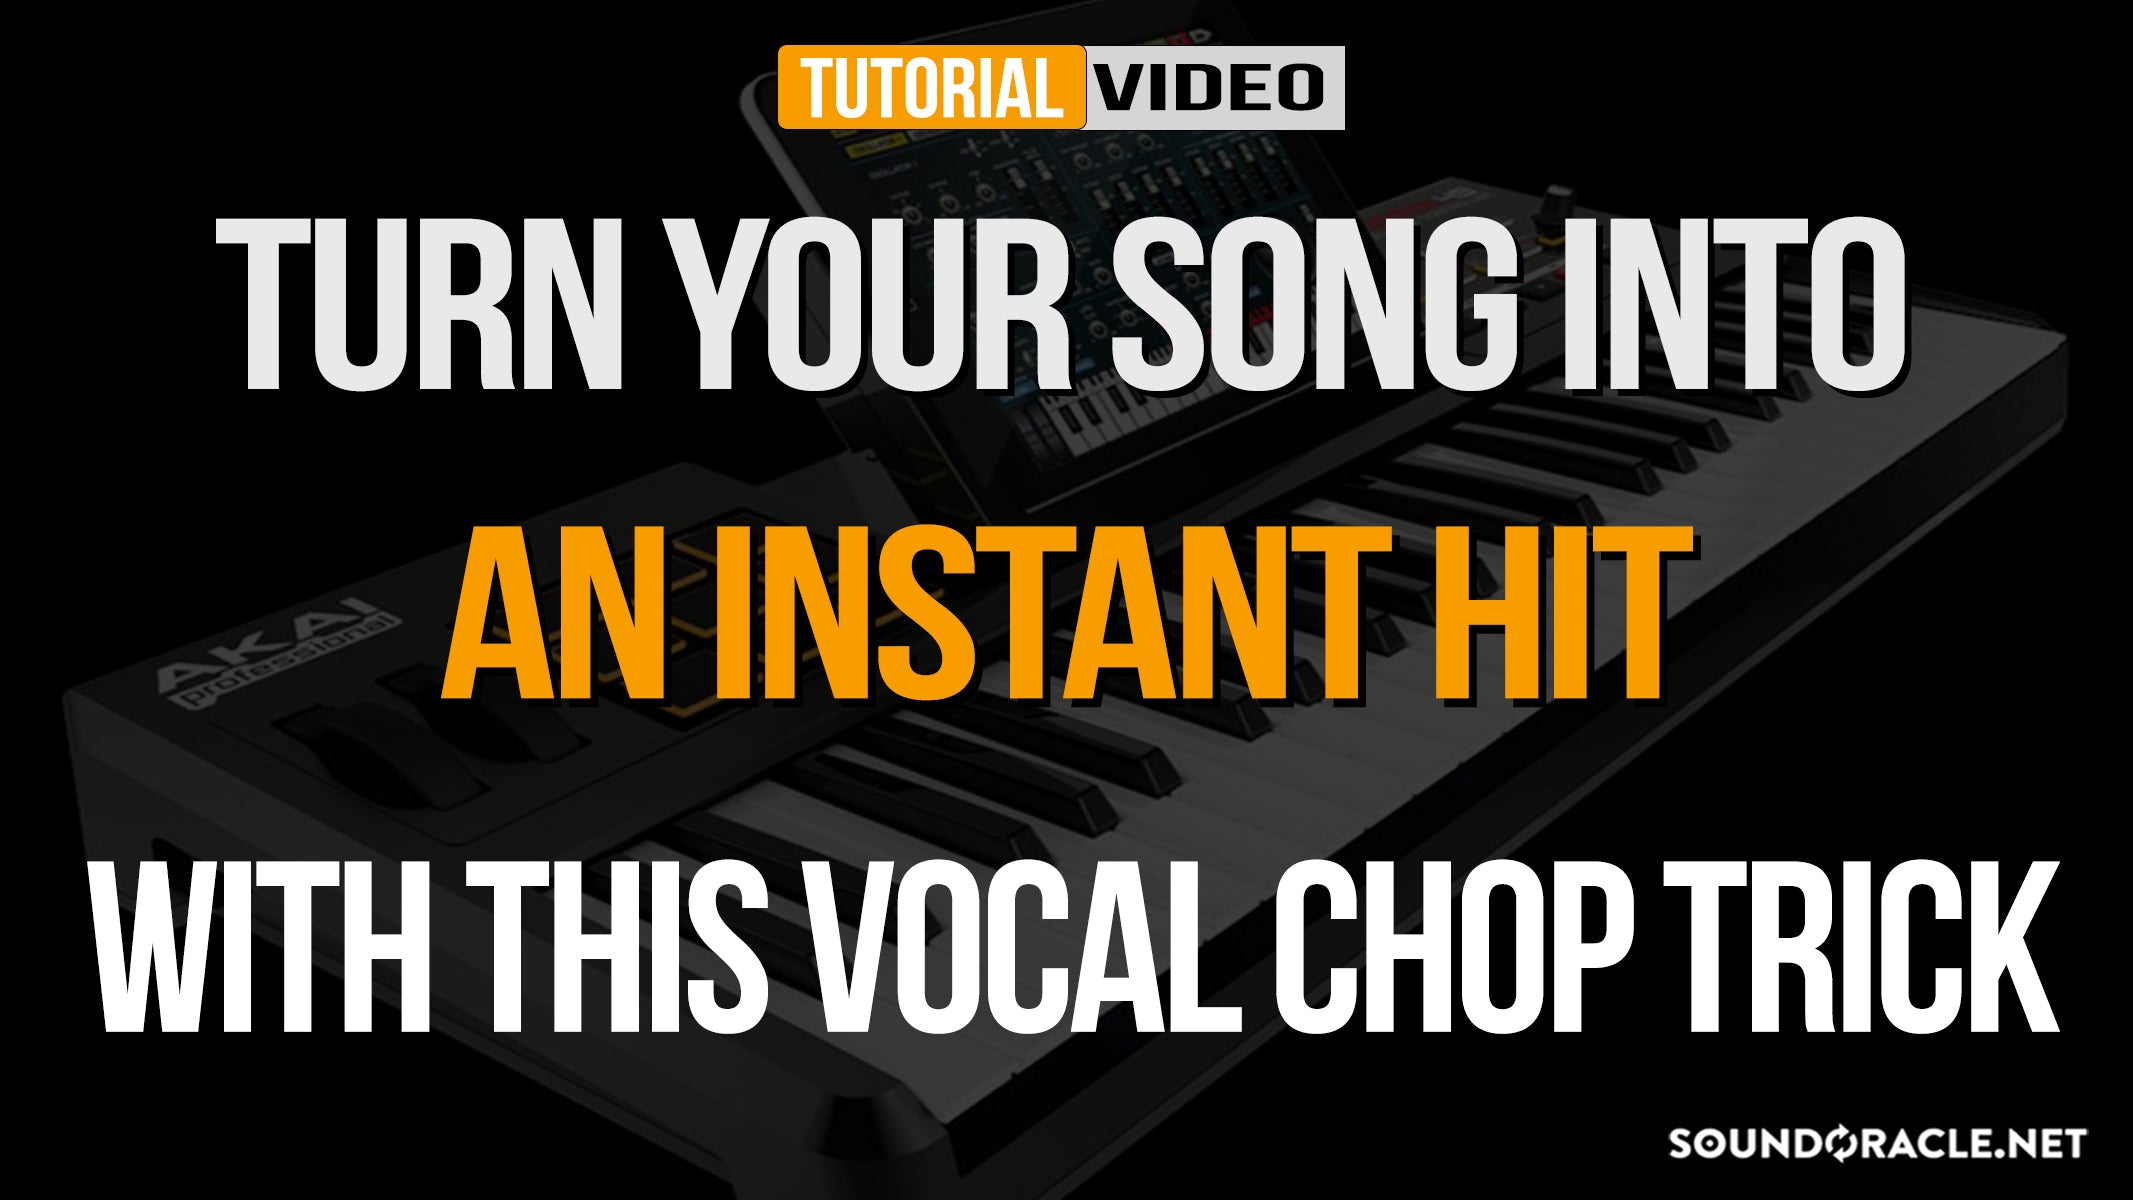 Turn Your Song Into An Instant Hit With This Vocal Chopping Effect